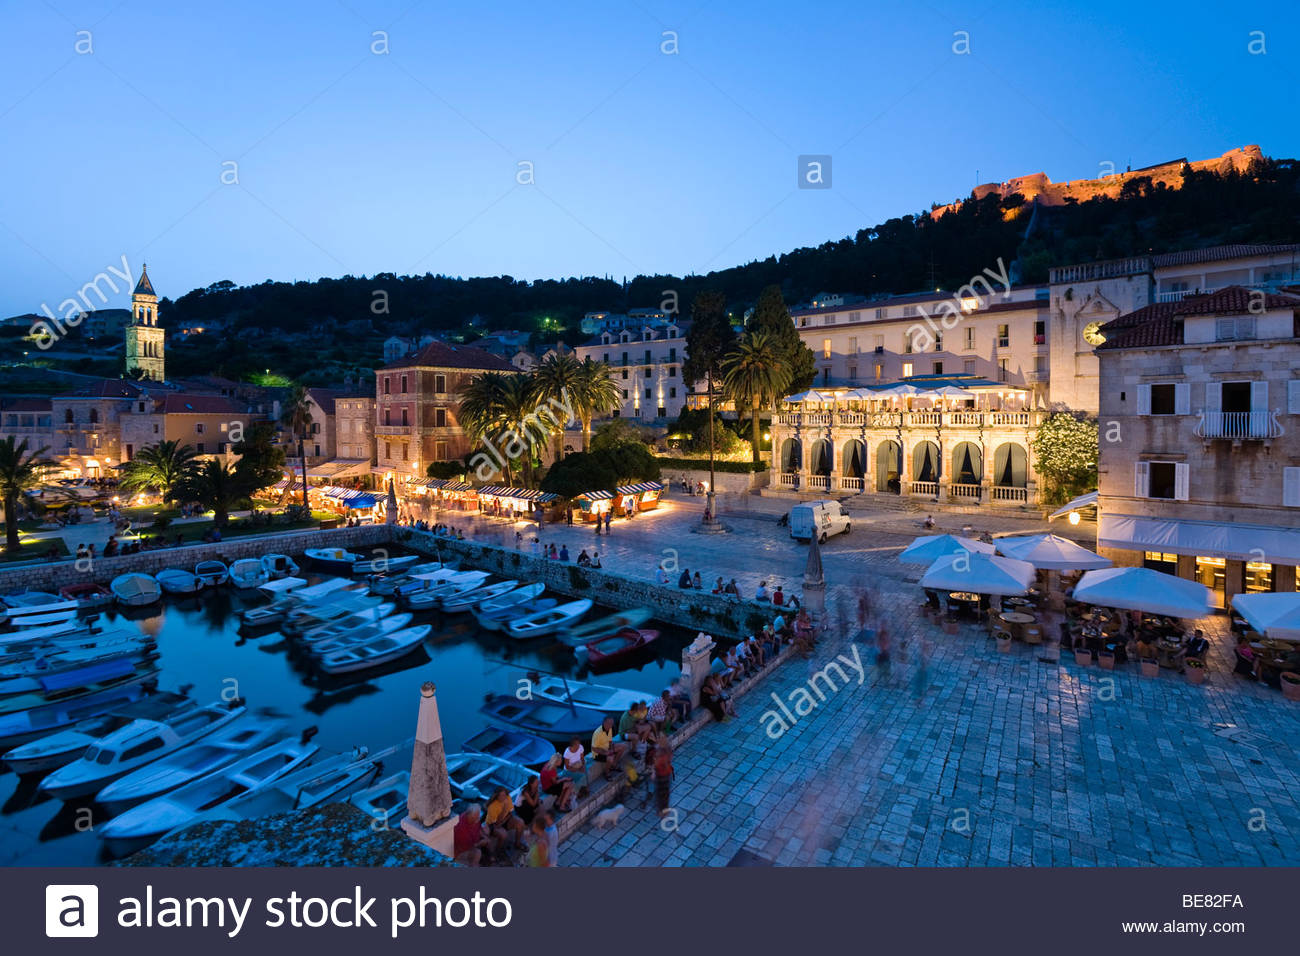 Harbour and palace hotel at the Old Town in the evening, Hvar, Hvar Island, Dalmatia, Croatia, Europe - Stock Image